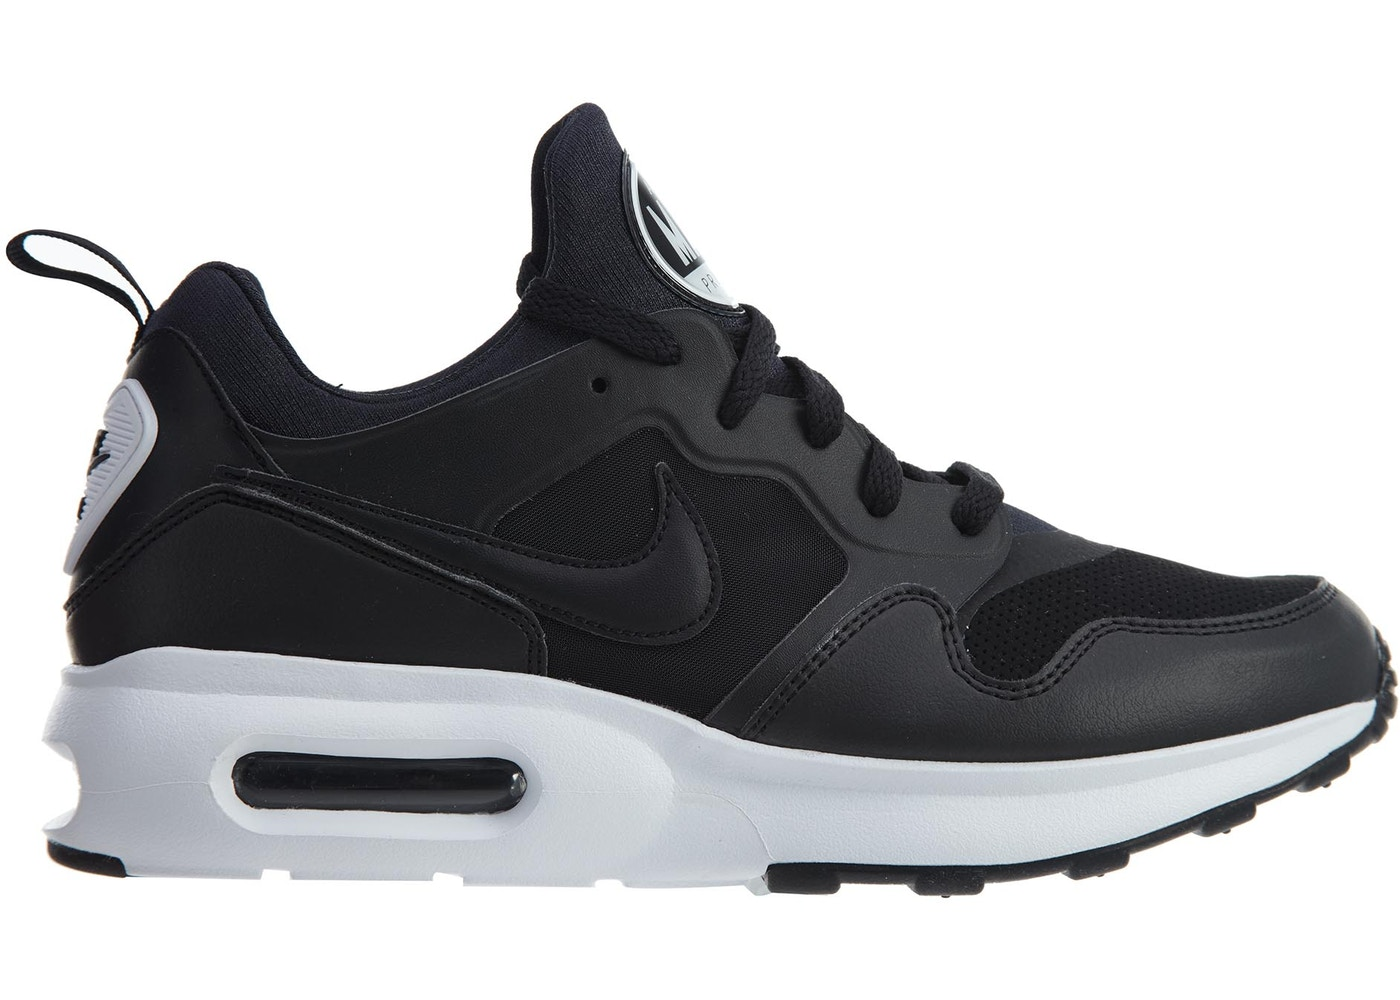 e0da326f54 Air Max Prime Sl Black Black White - 876069-002